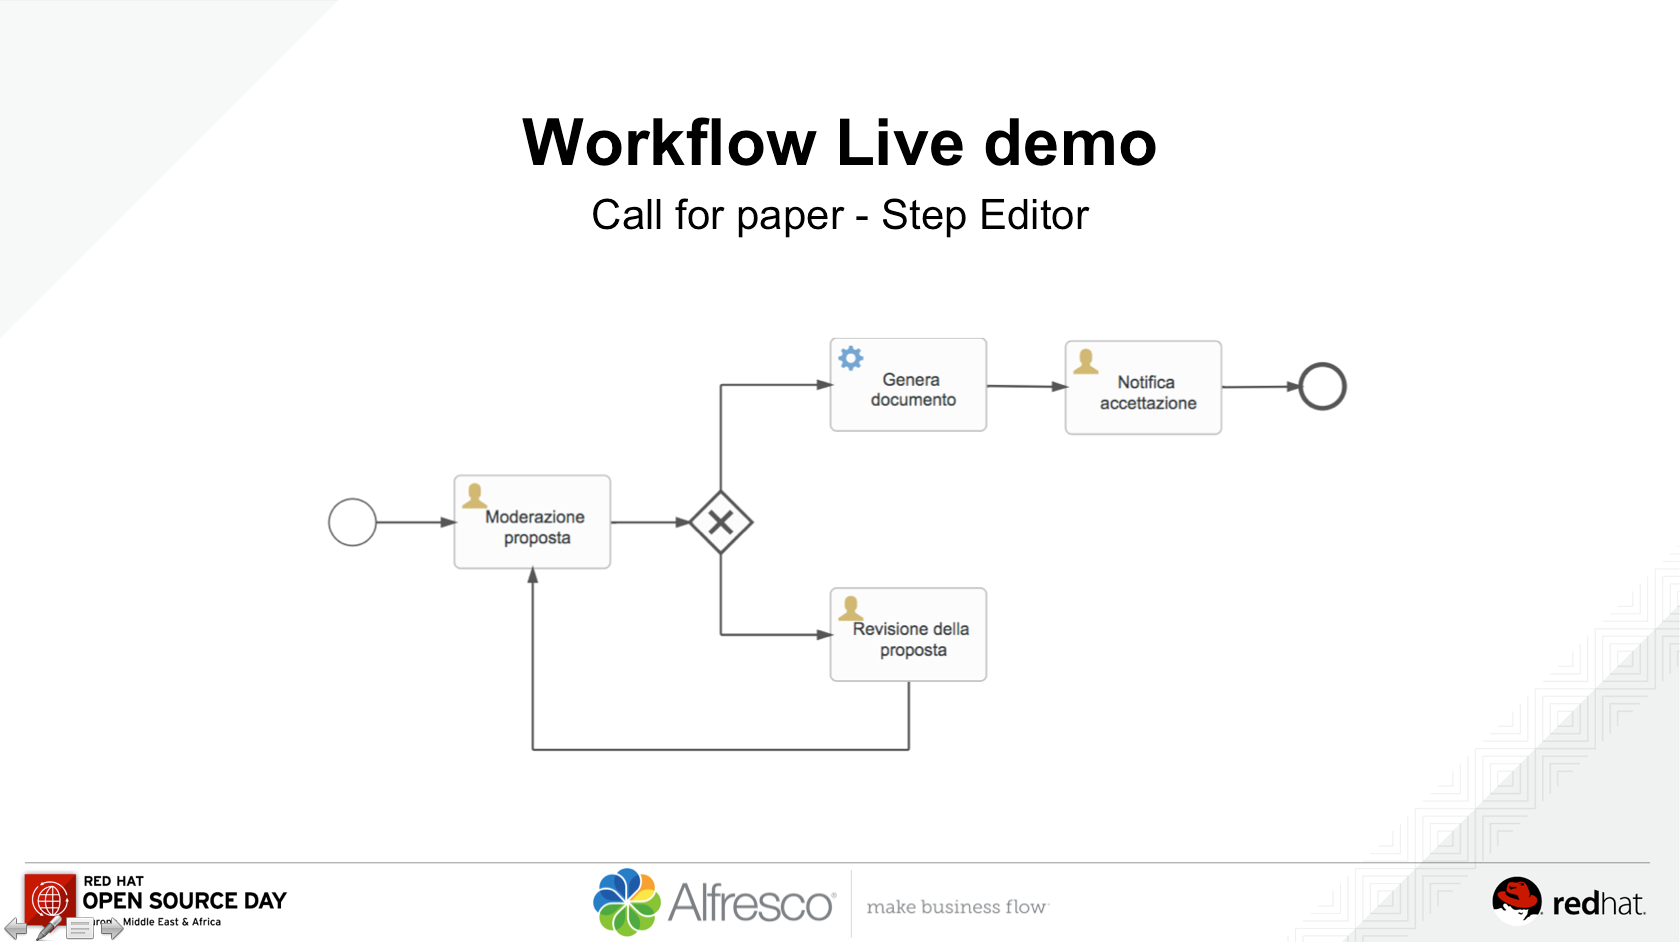 The example process used for recreating the same workflow definition using the Step Editor